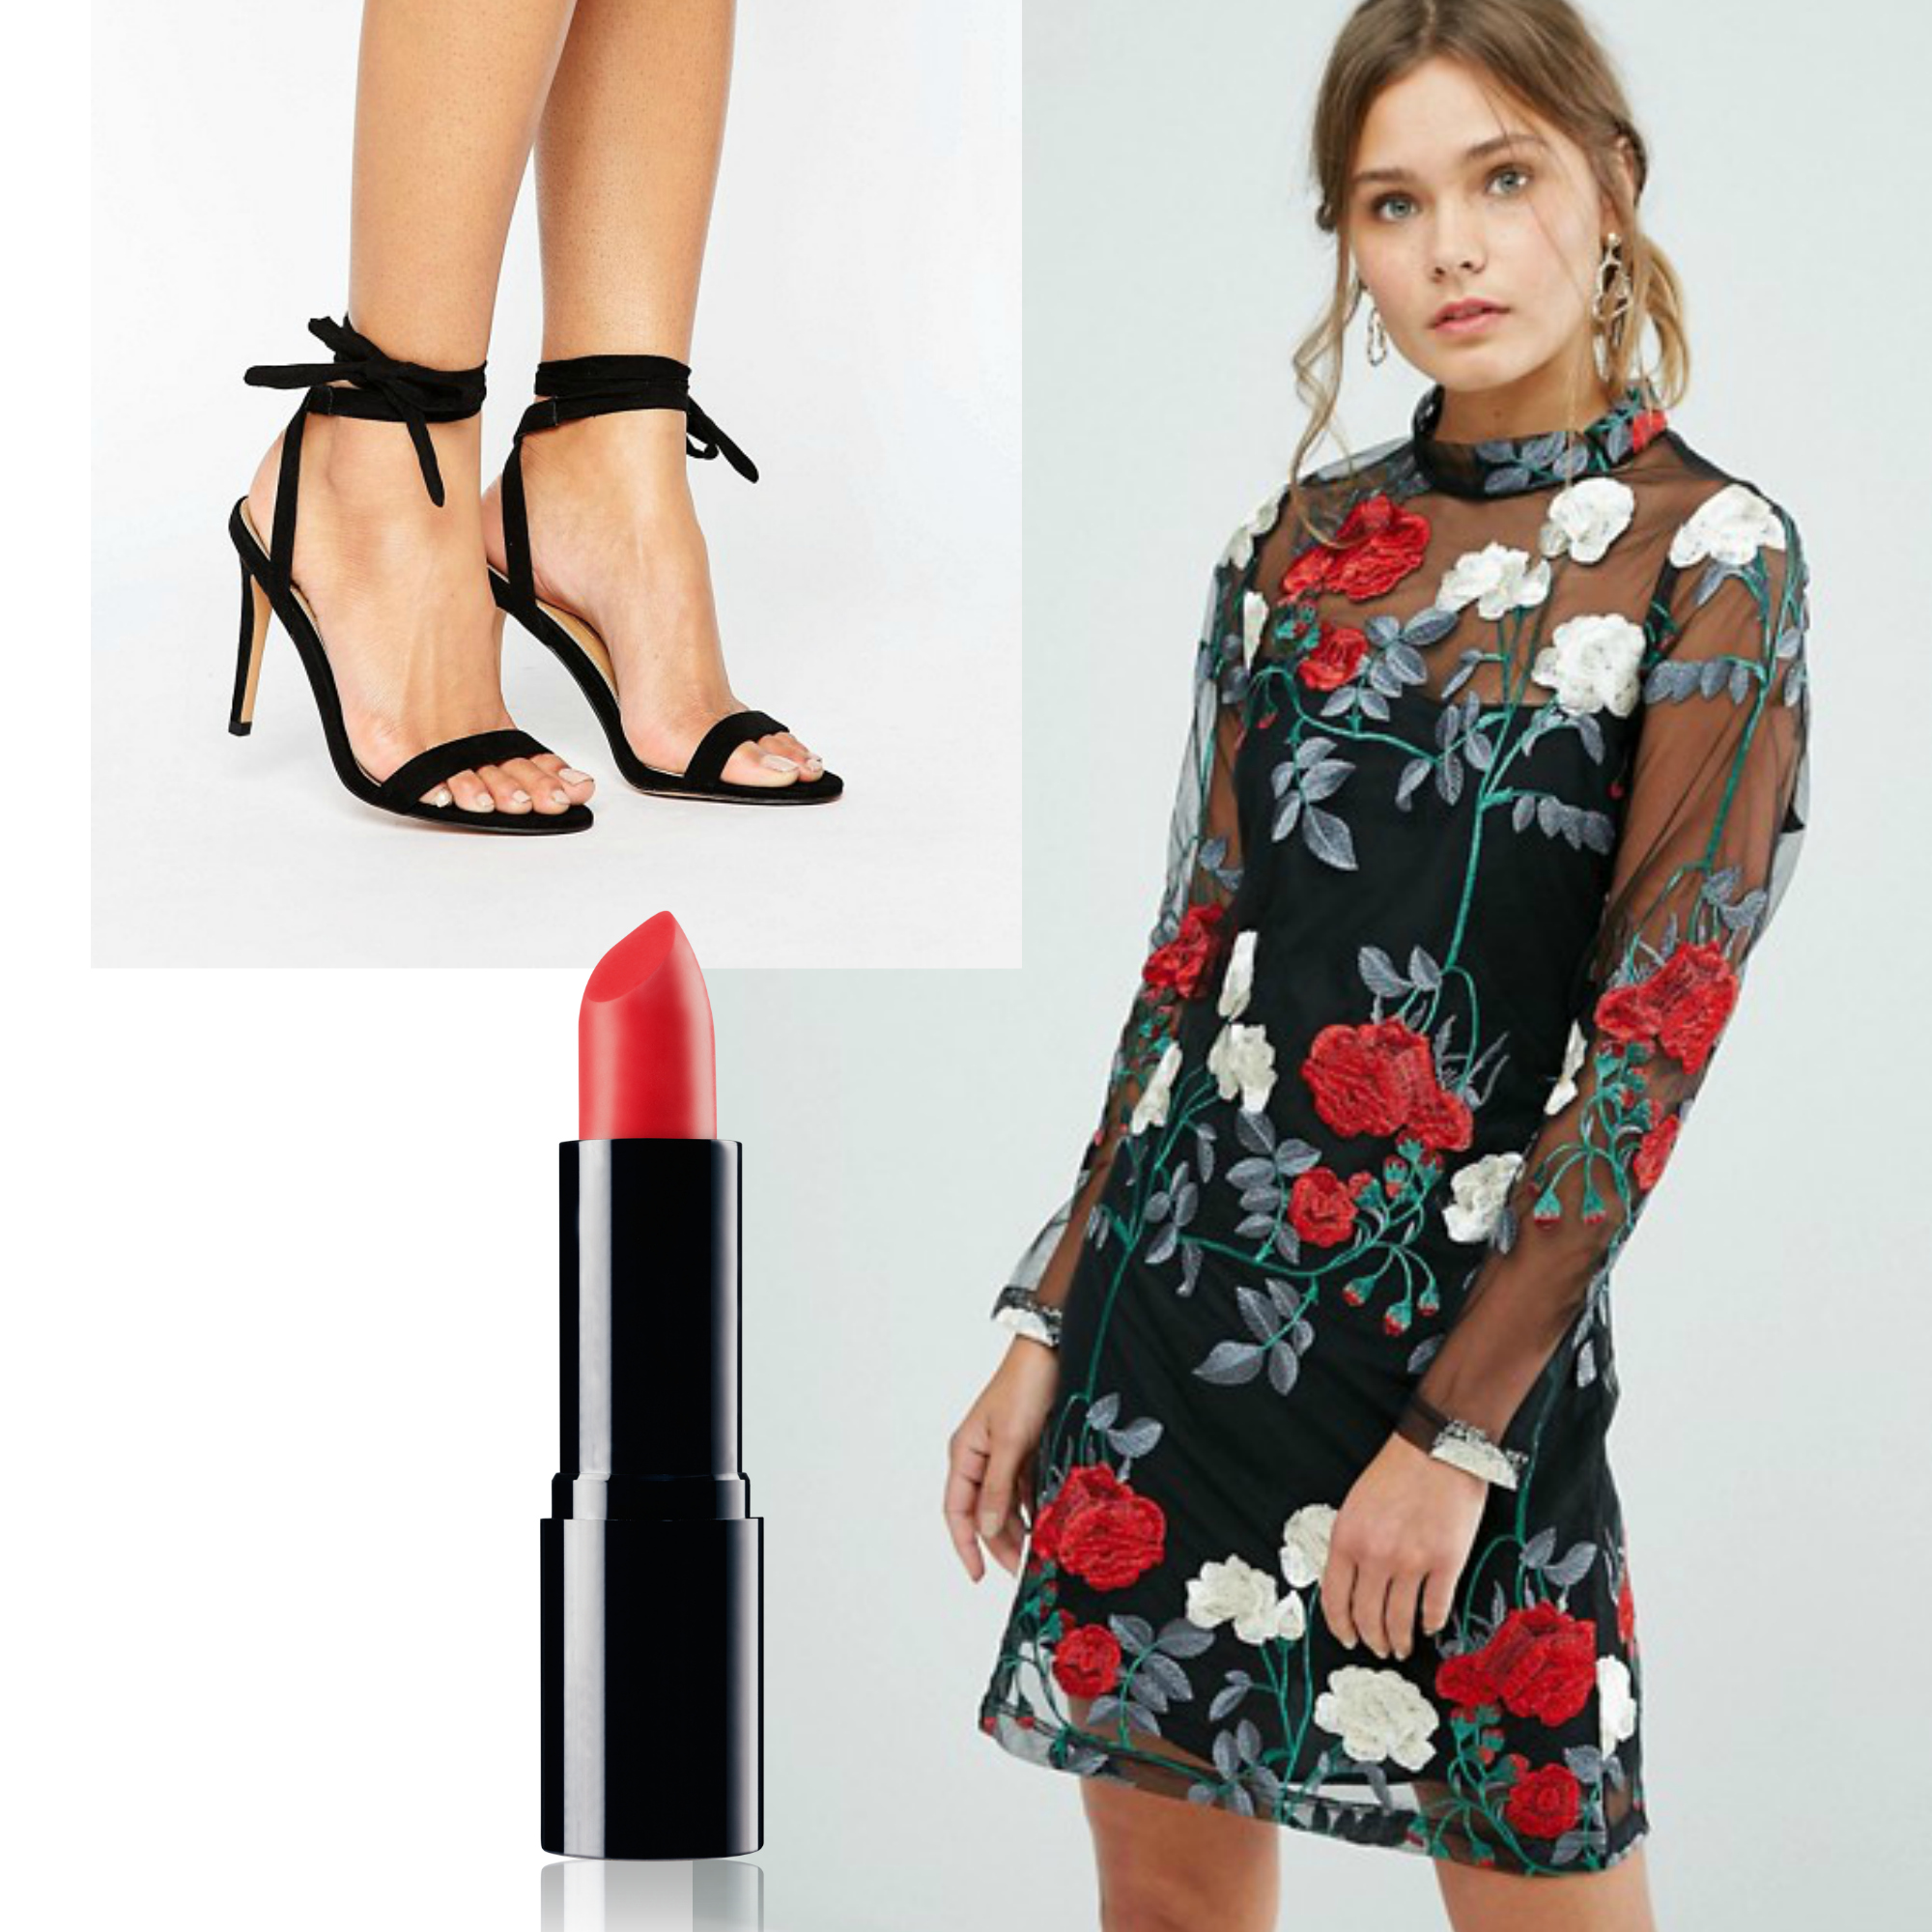 New Years Eve Outfit Idea Under $150  Budget Friendly Party Outfit  Embroidered Little Black Dress with Strappy Heels and Red Lip